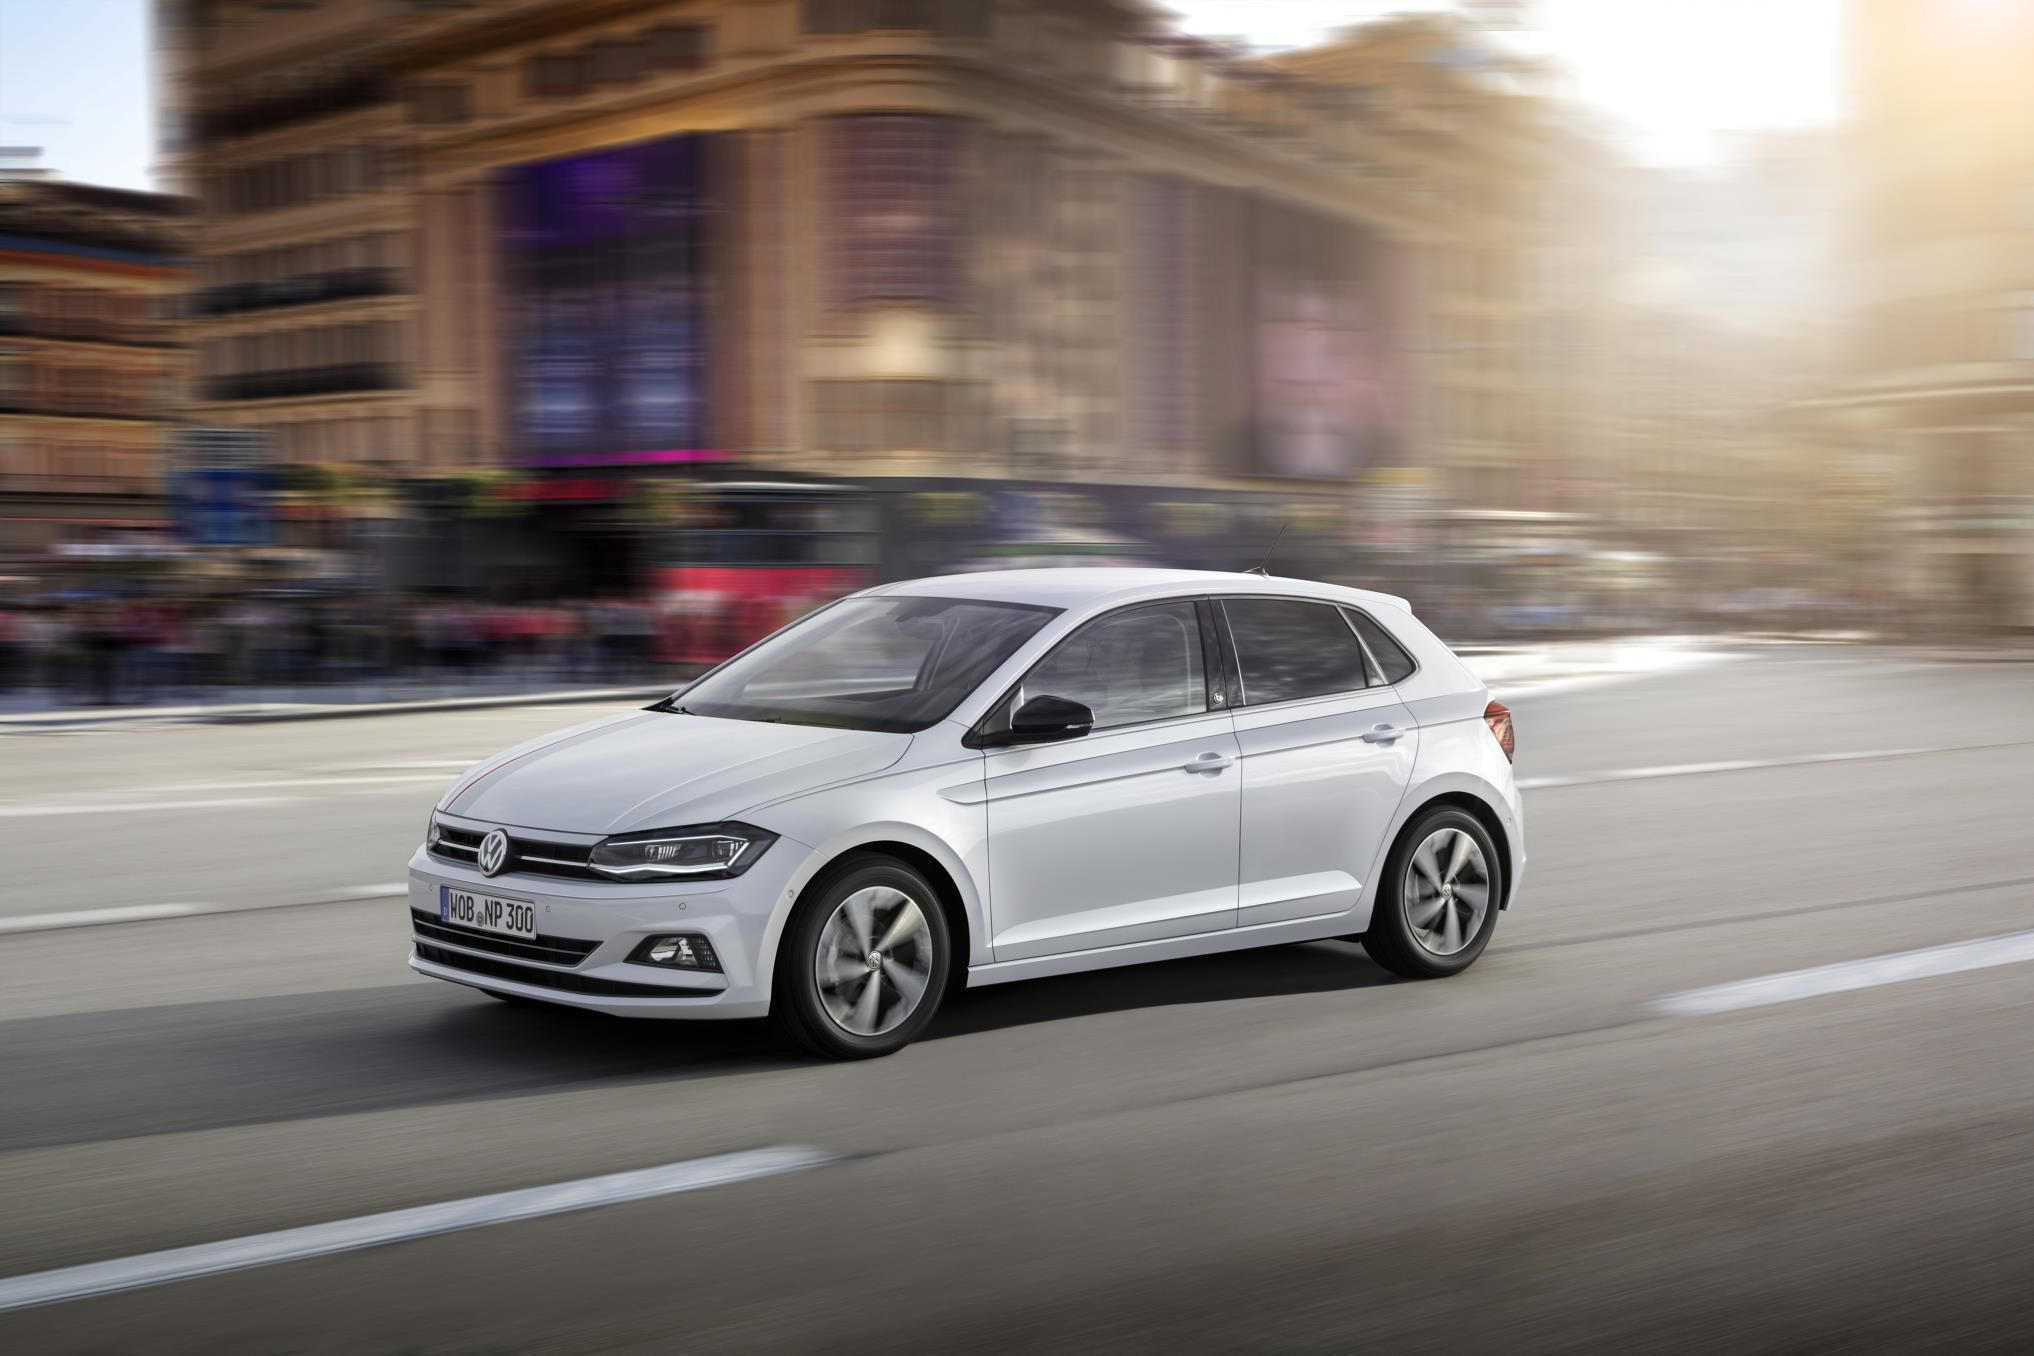 White Volkswagen Polo Beats driving down a street with a building in the background blurred as the car is driving past